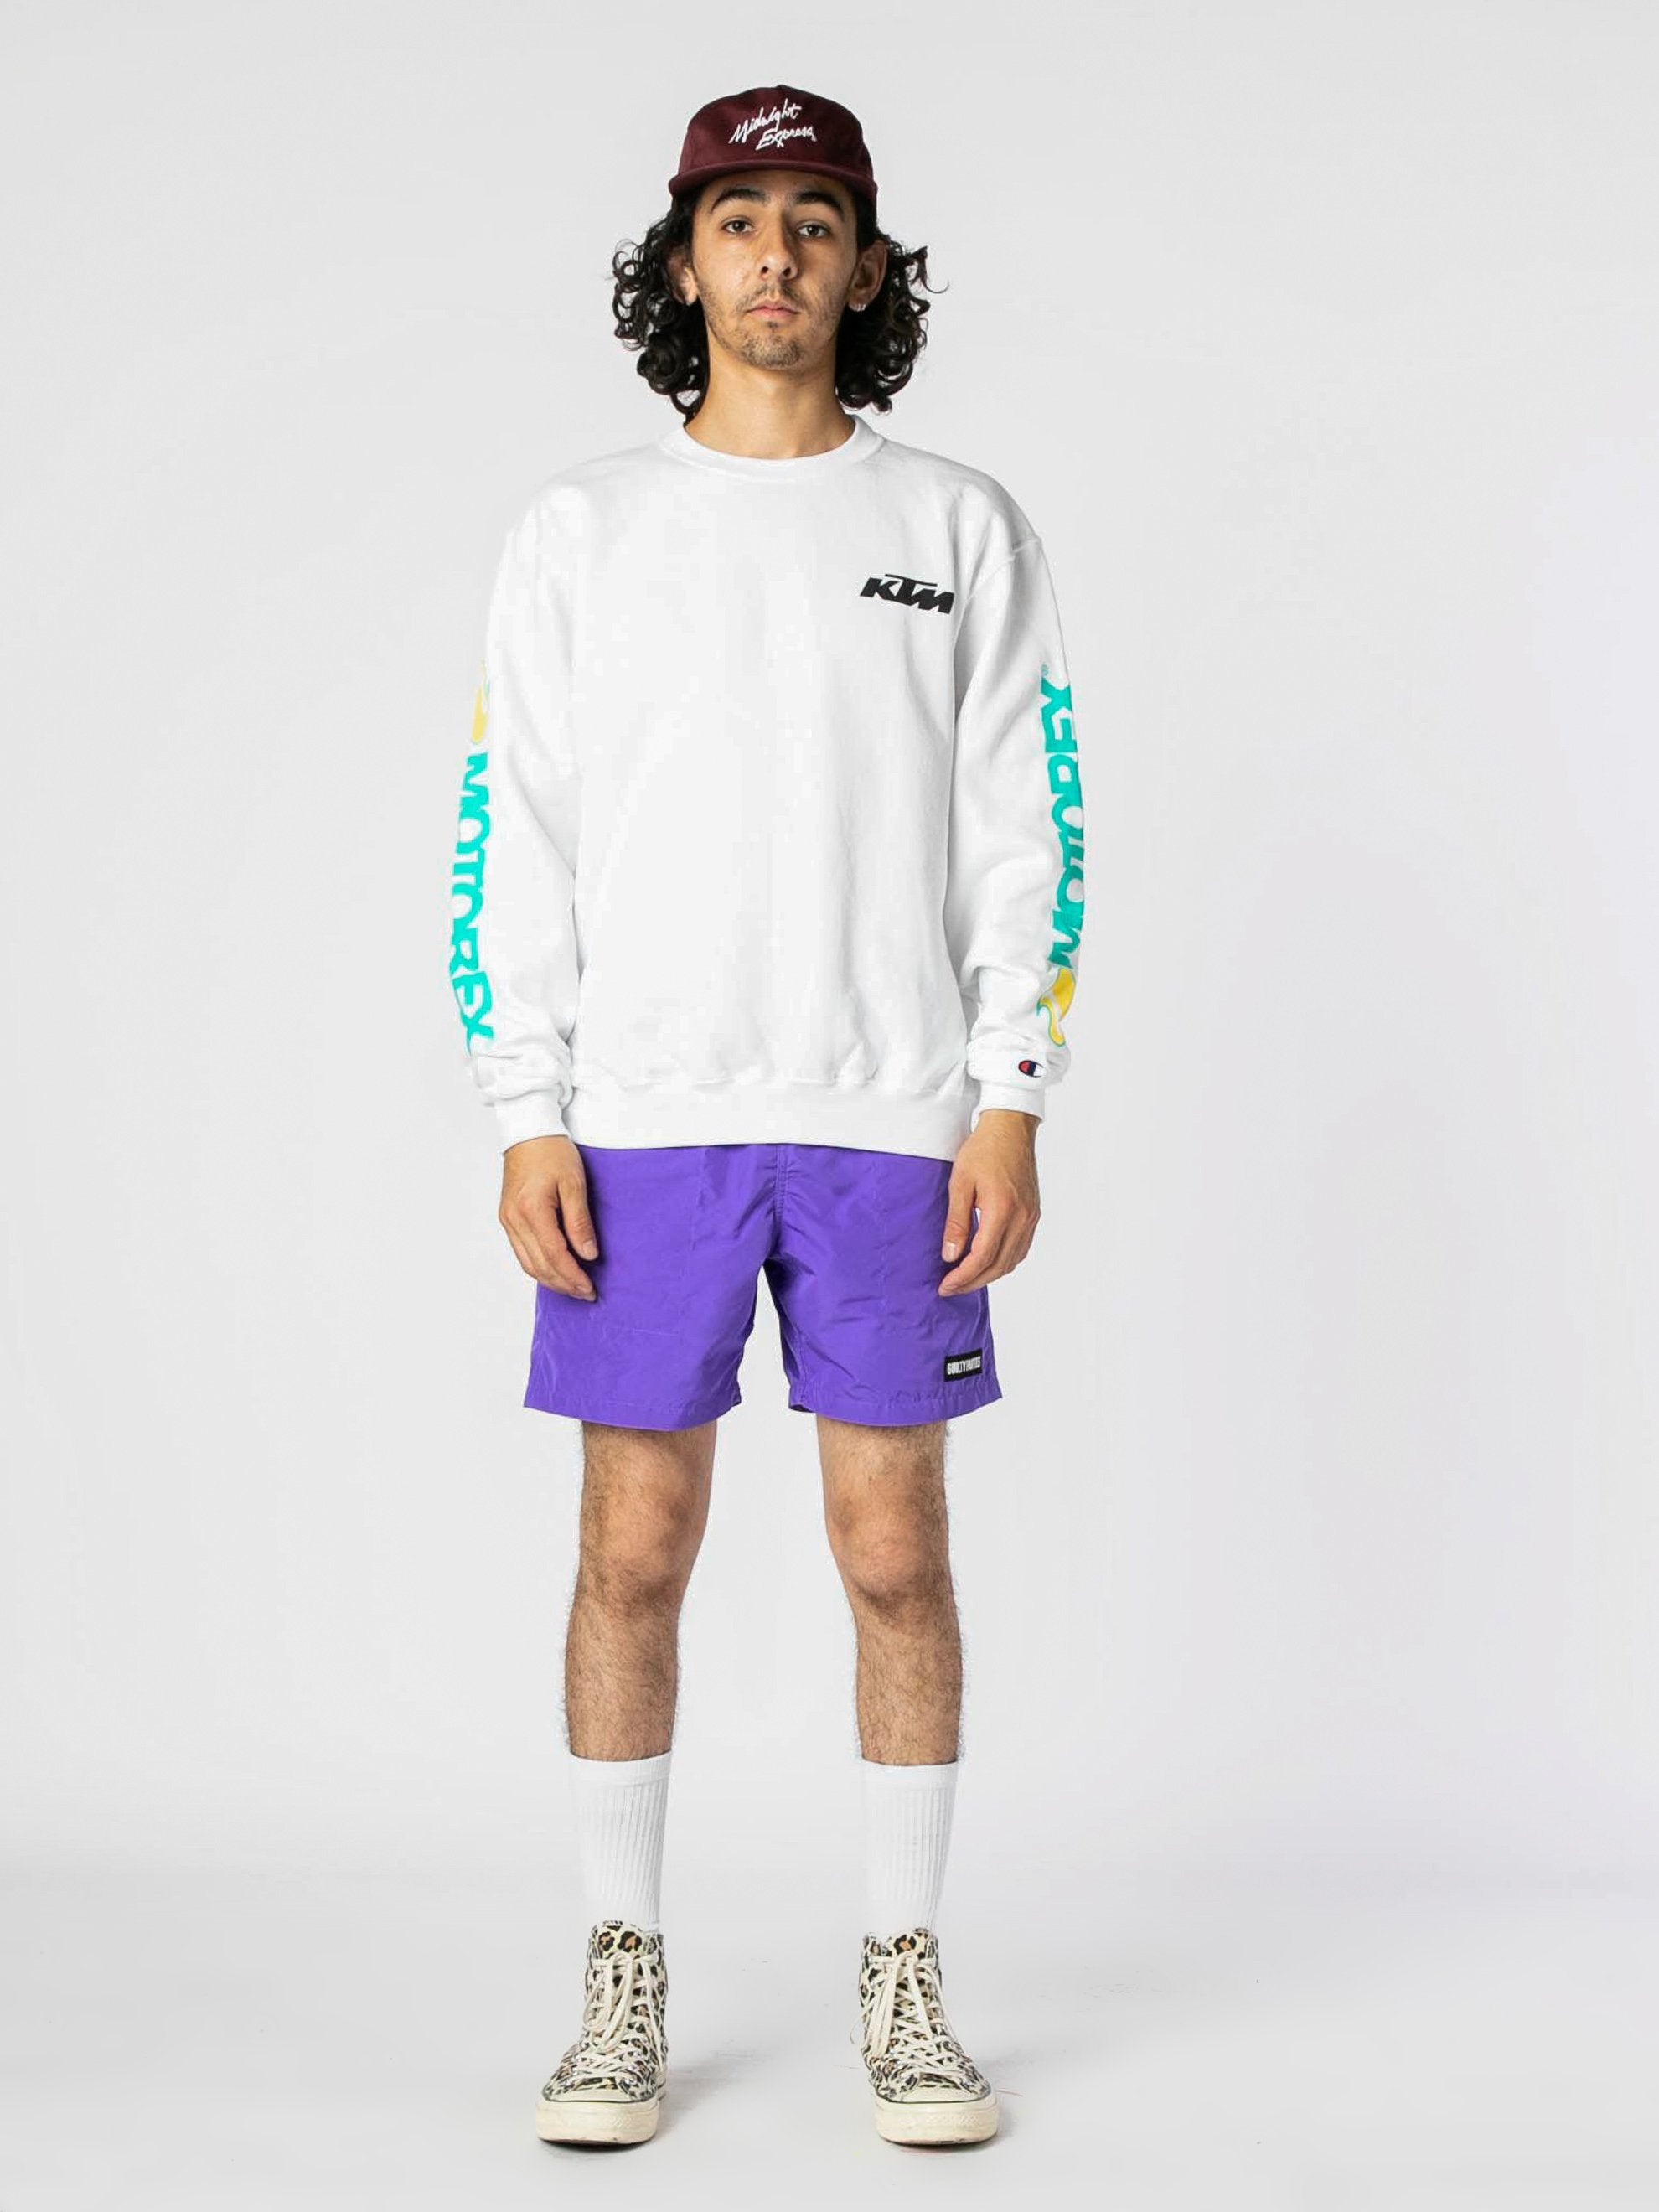 White Dunn Edwards Crewneck 4